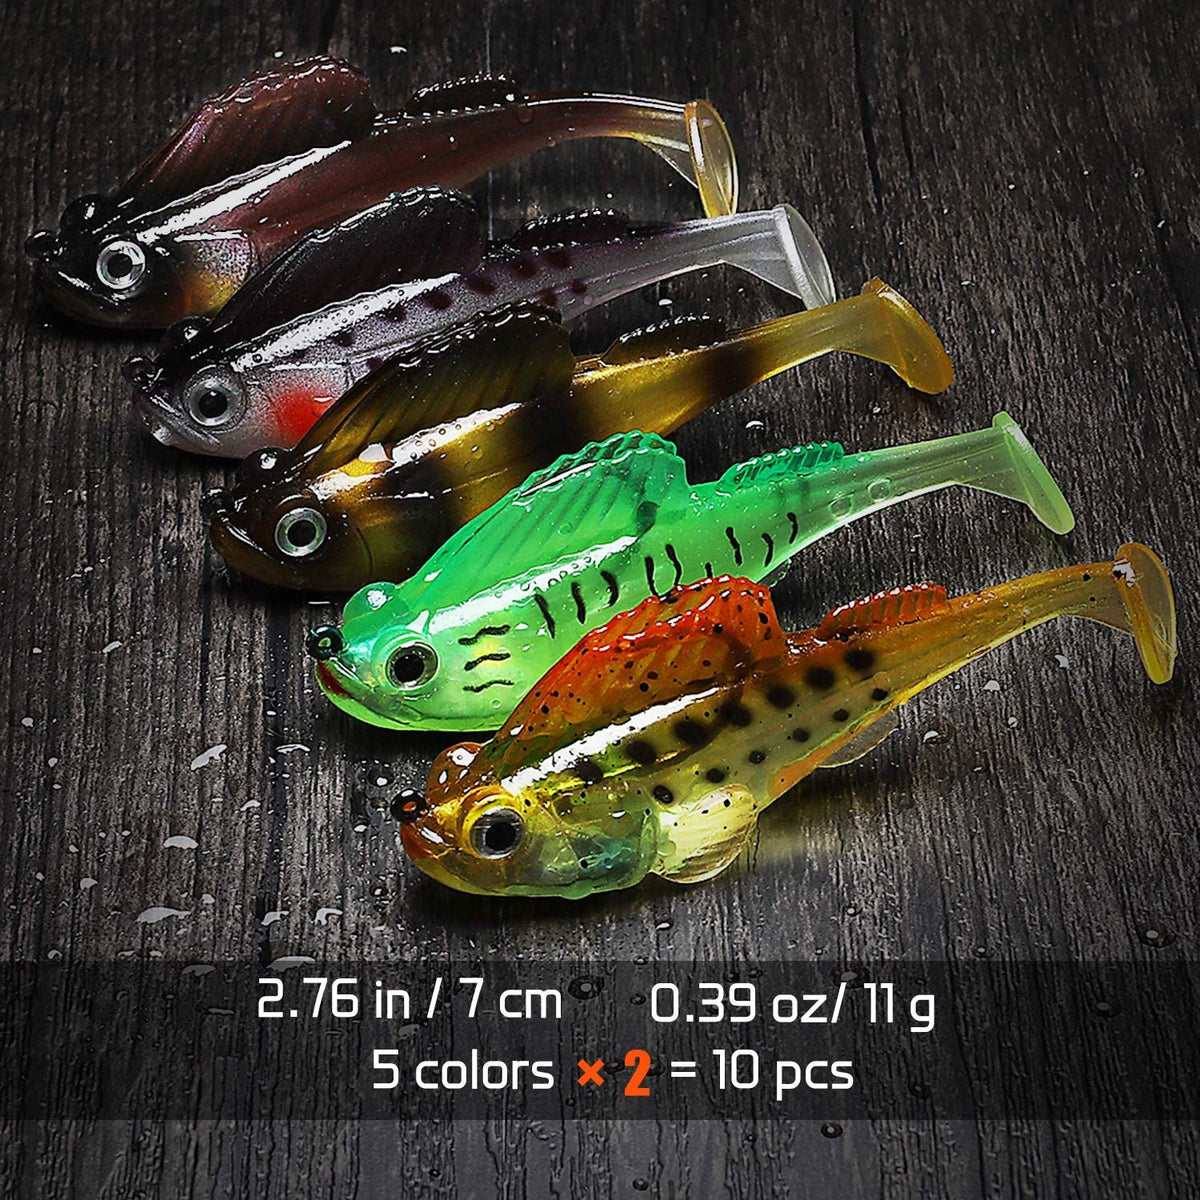 OutdoorCapitol™ Premium Japanese Jumping Fish Fishing Lure [5PCS]